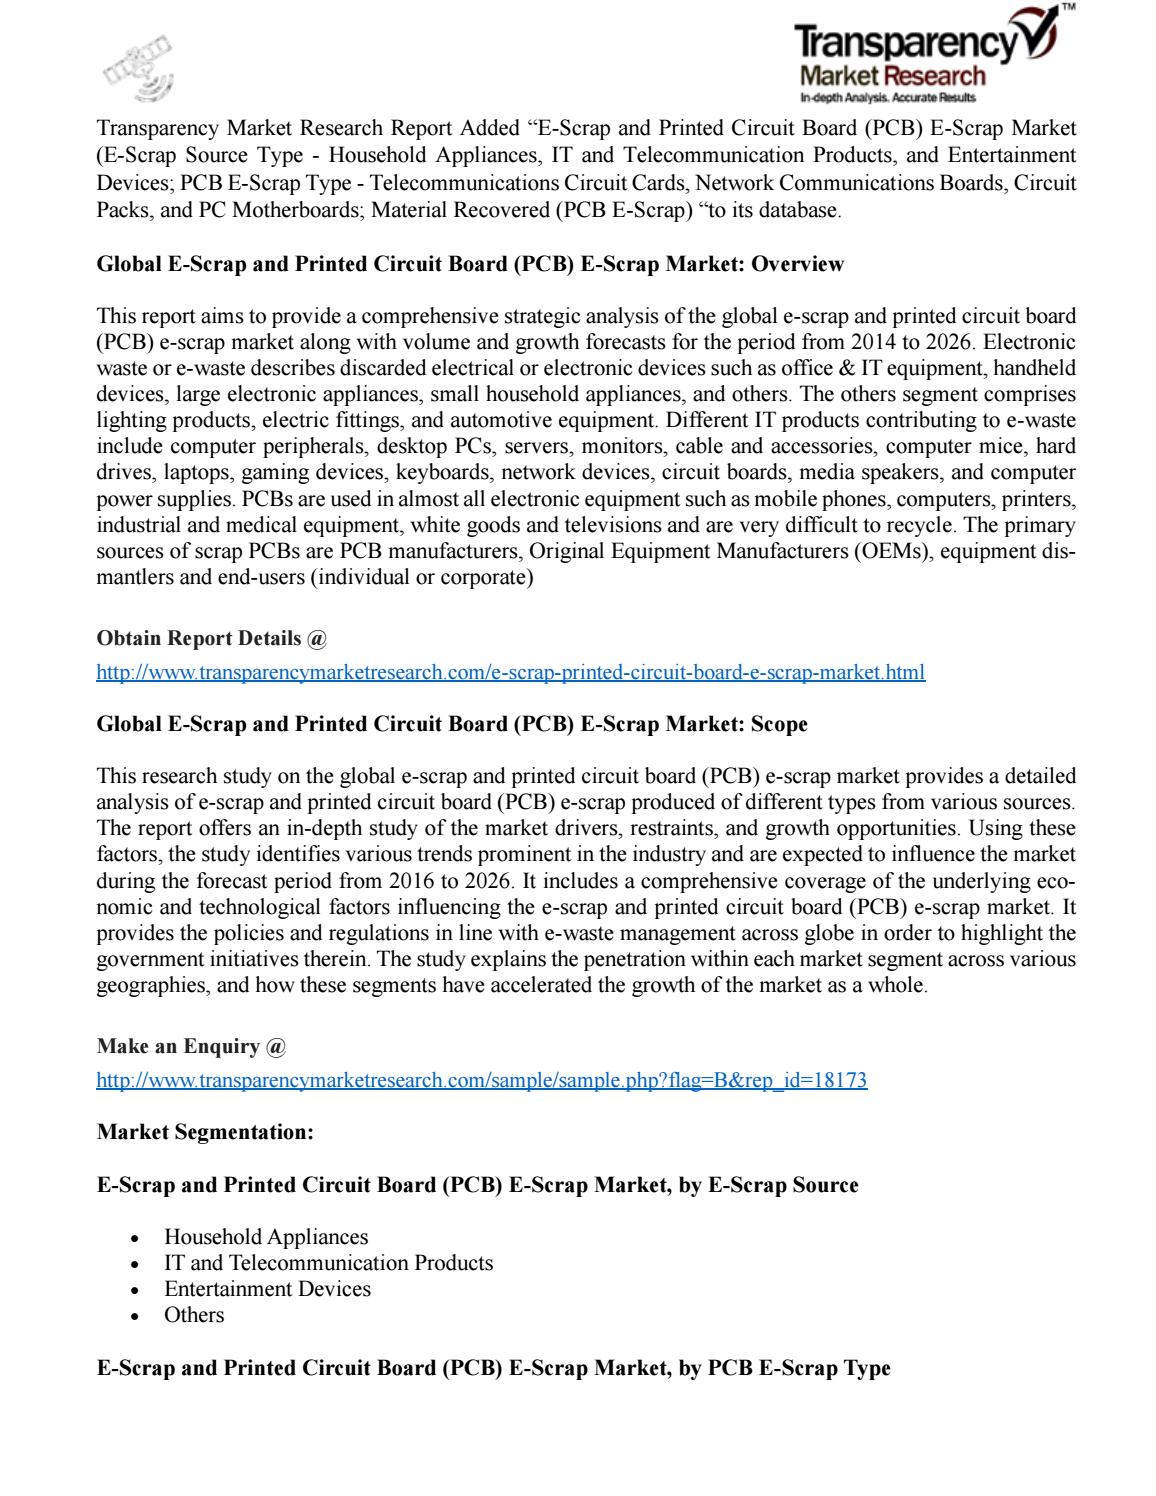 E Scrap And Printed Circuit Board Pcb Market By Technology Buy Home Theater Boardcircuit Boards Orderpcb Research Report Issuu